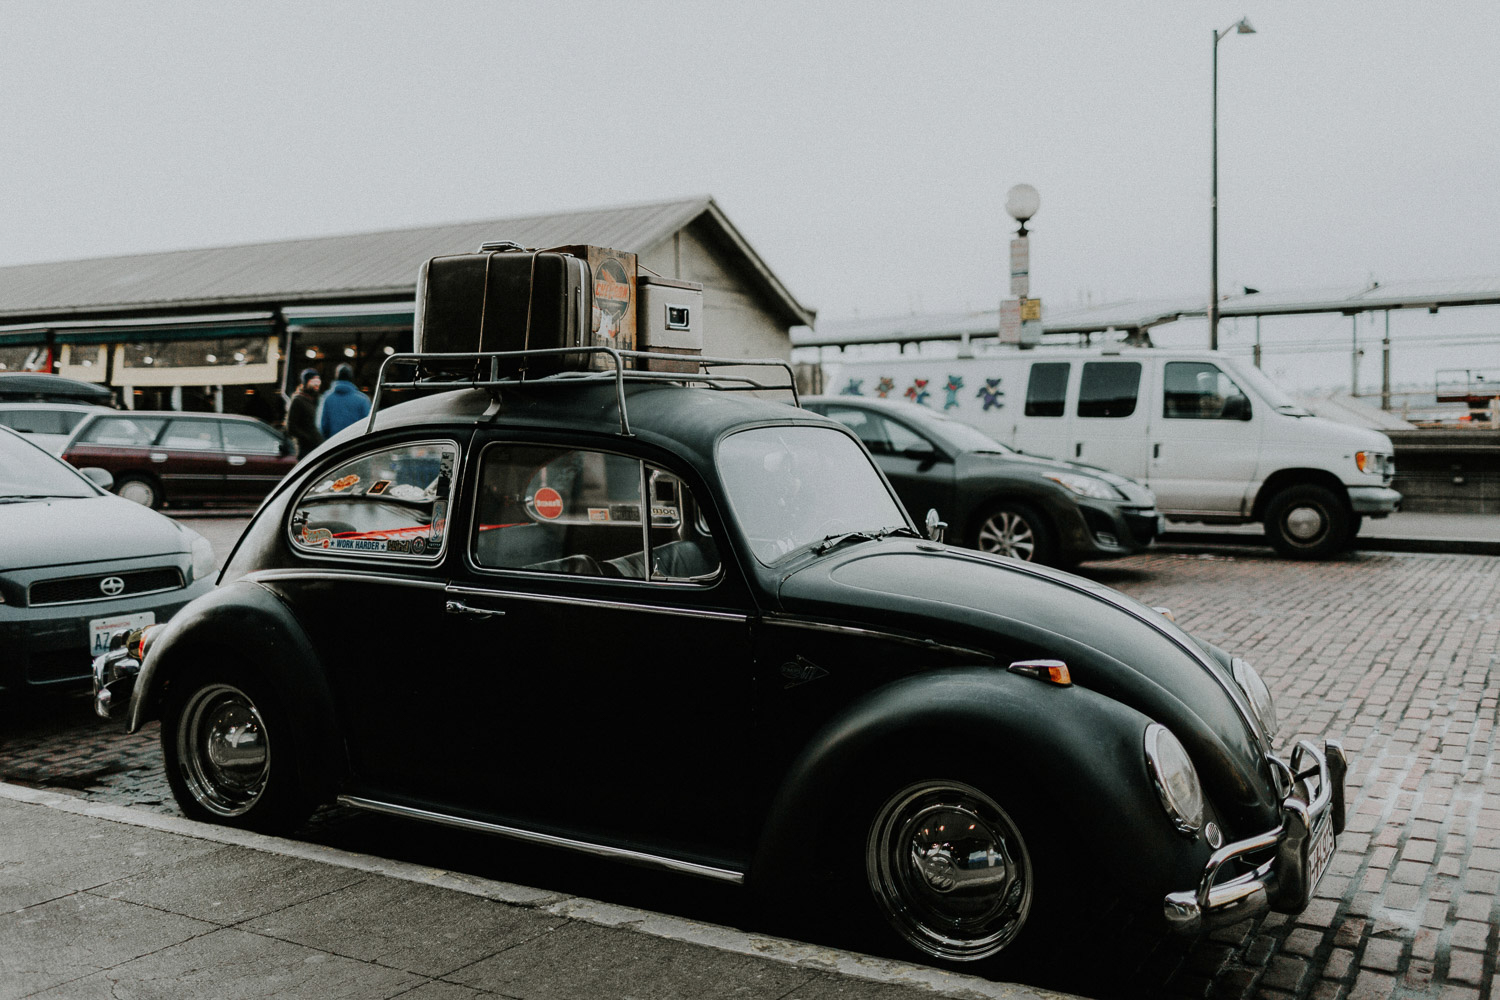 Image of vintage beetle on street